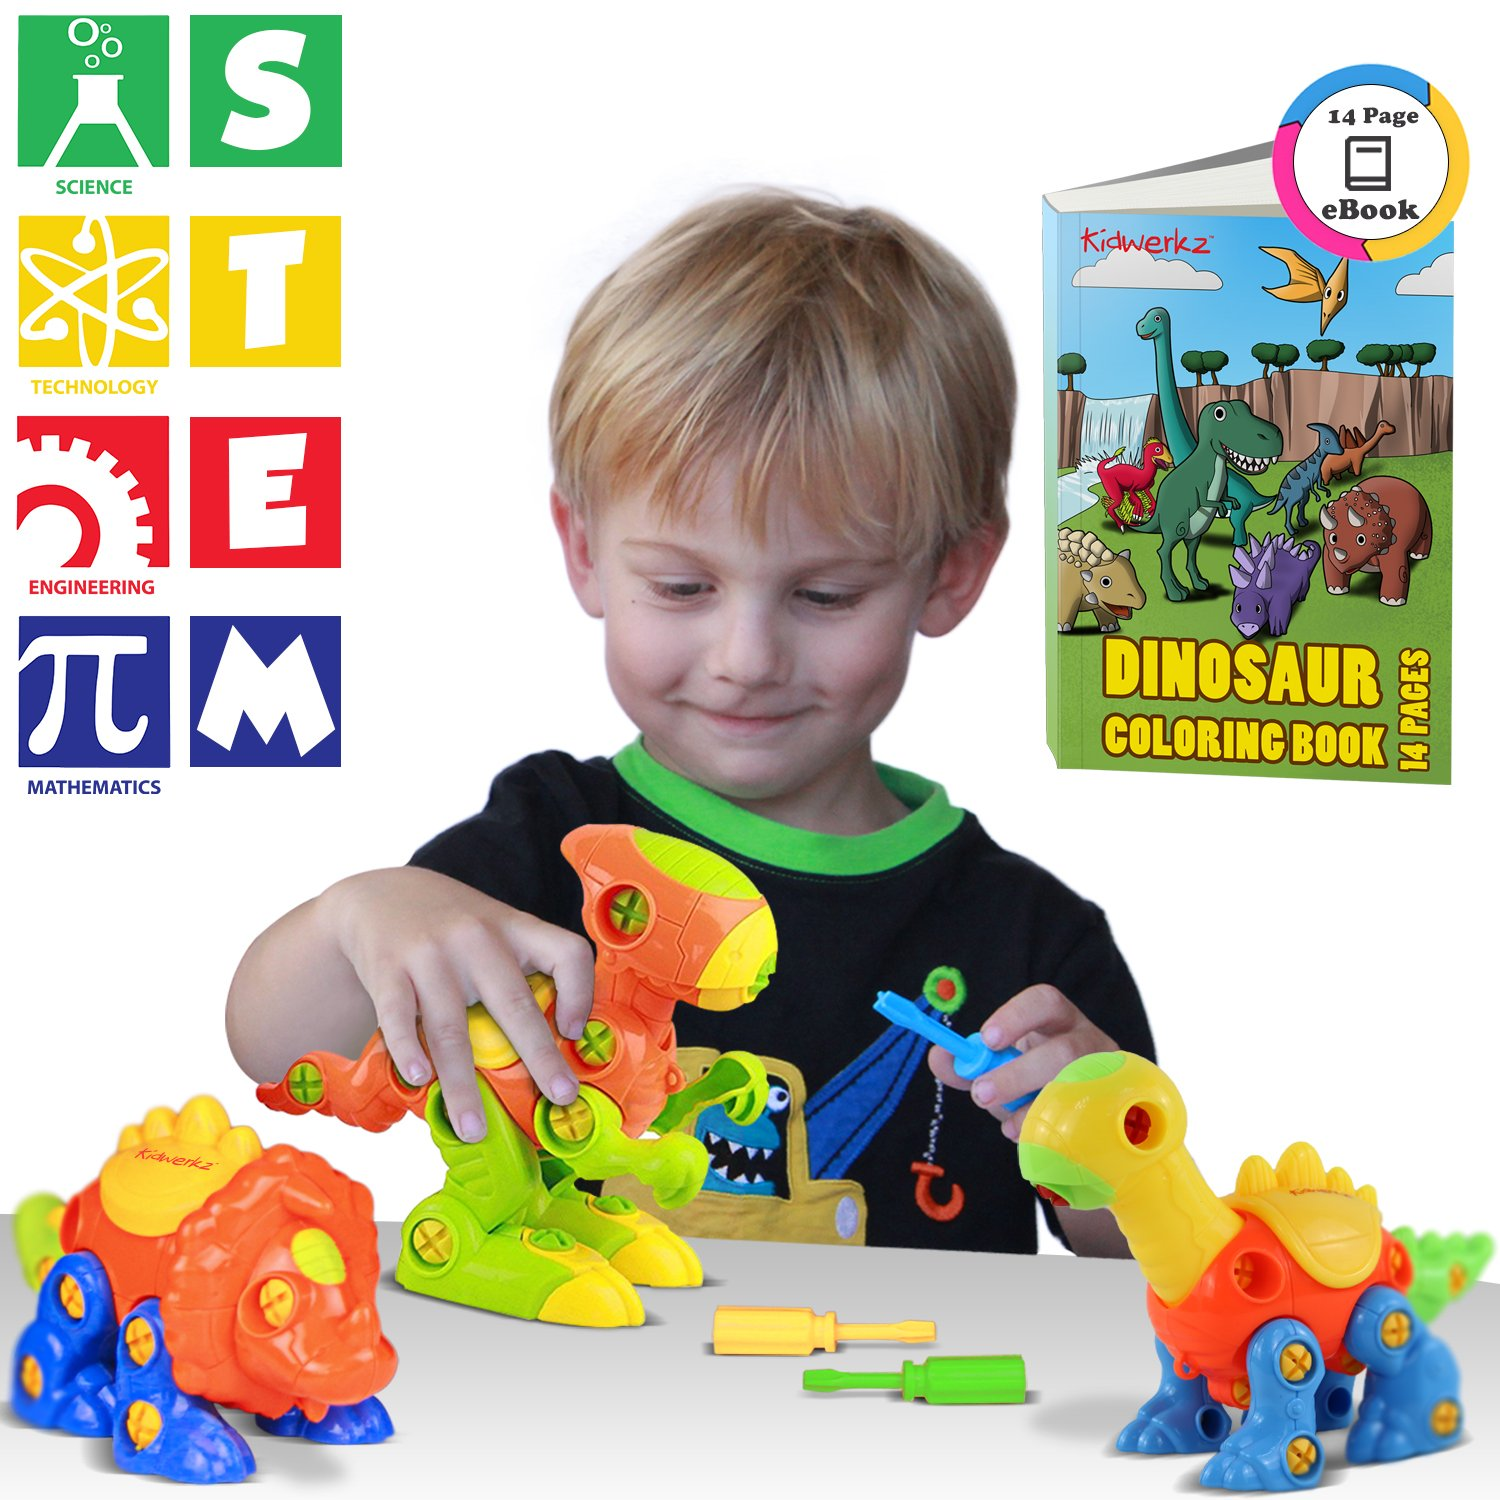 Kidwerkz Dinosaur Toys, STEM Learning (106 pieces), Take Apart Fun (Pack of 3), Construction Engineering Building Play Set For Boys Girls Toddlers, Best Toy Gift Kids Ages 3yr – 6yr, 3 Years and Up Review